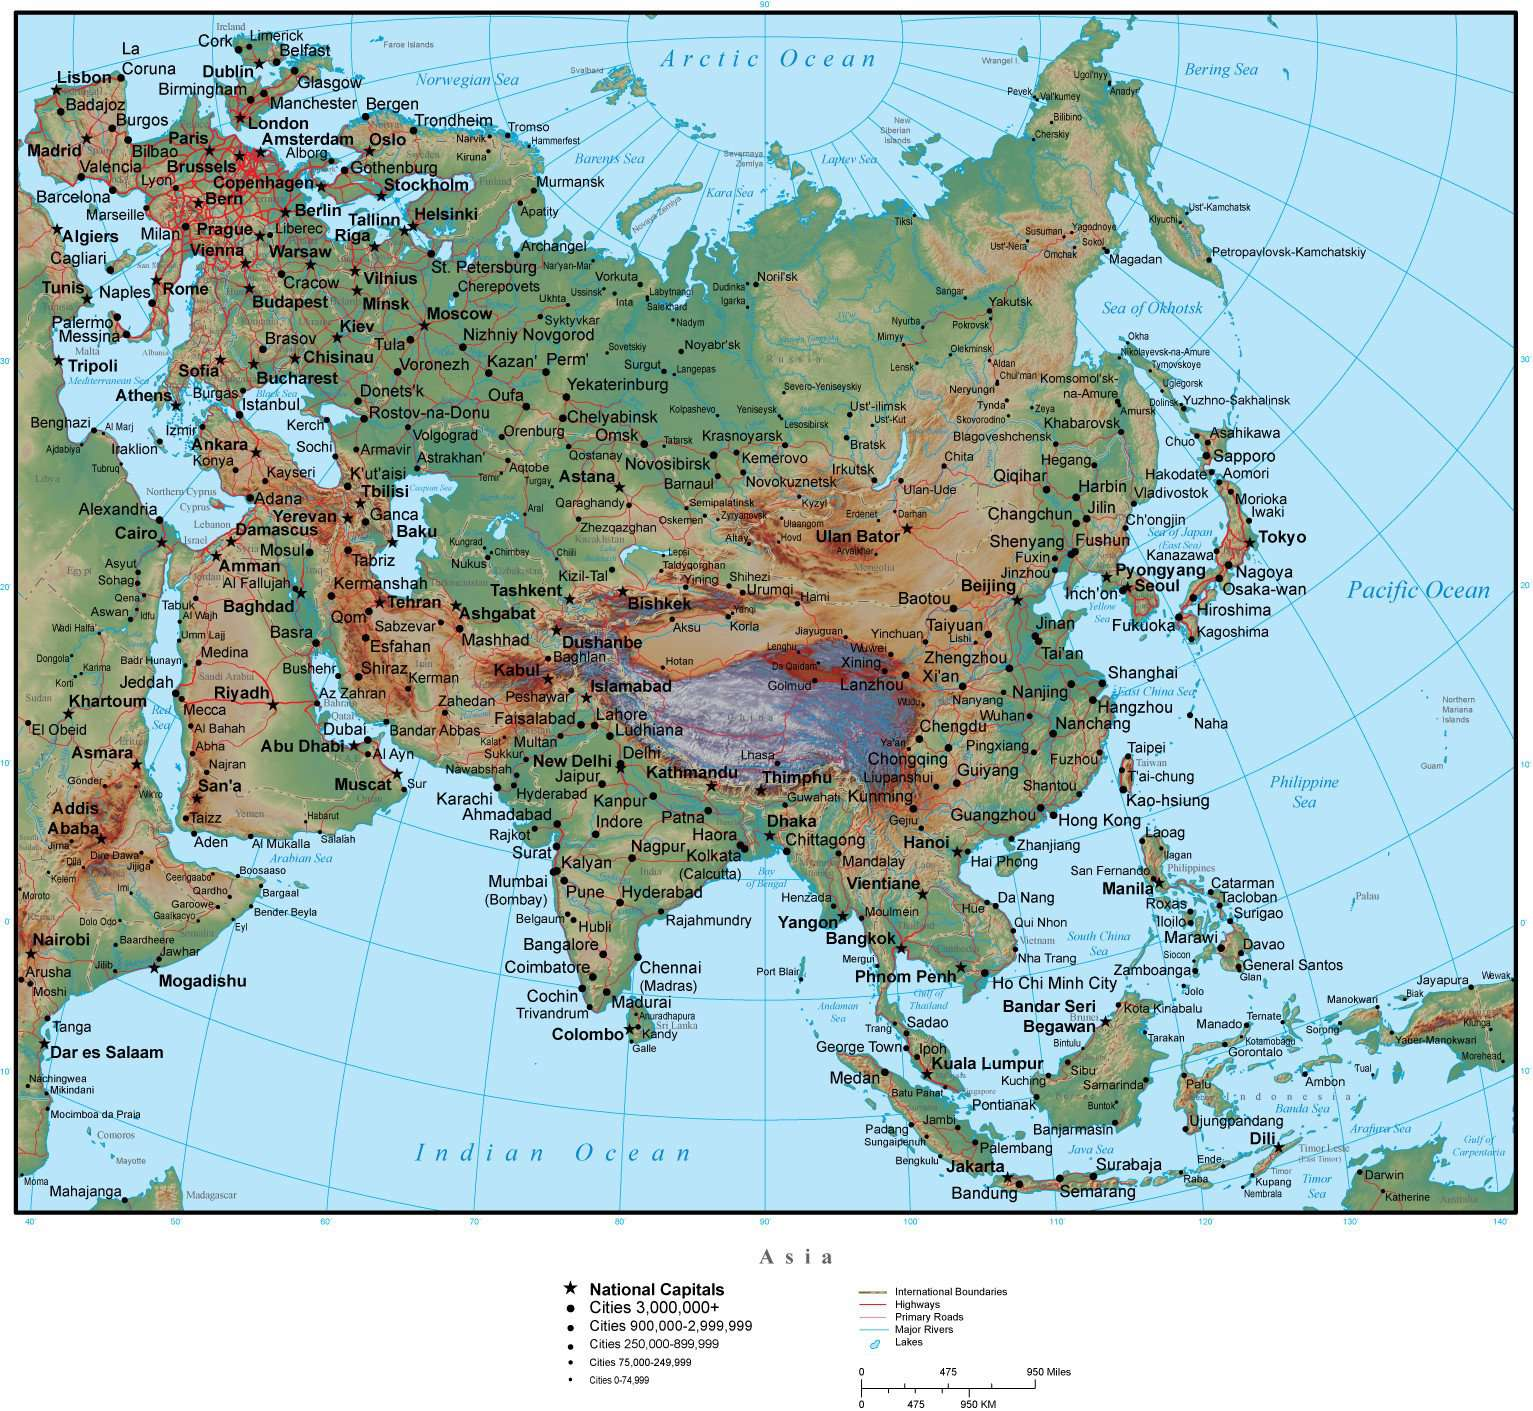 Picture of: Asia Terrain Map In Adobe Illustrator Vector Format With Photoshop Terrain Image Asiaxx 952871